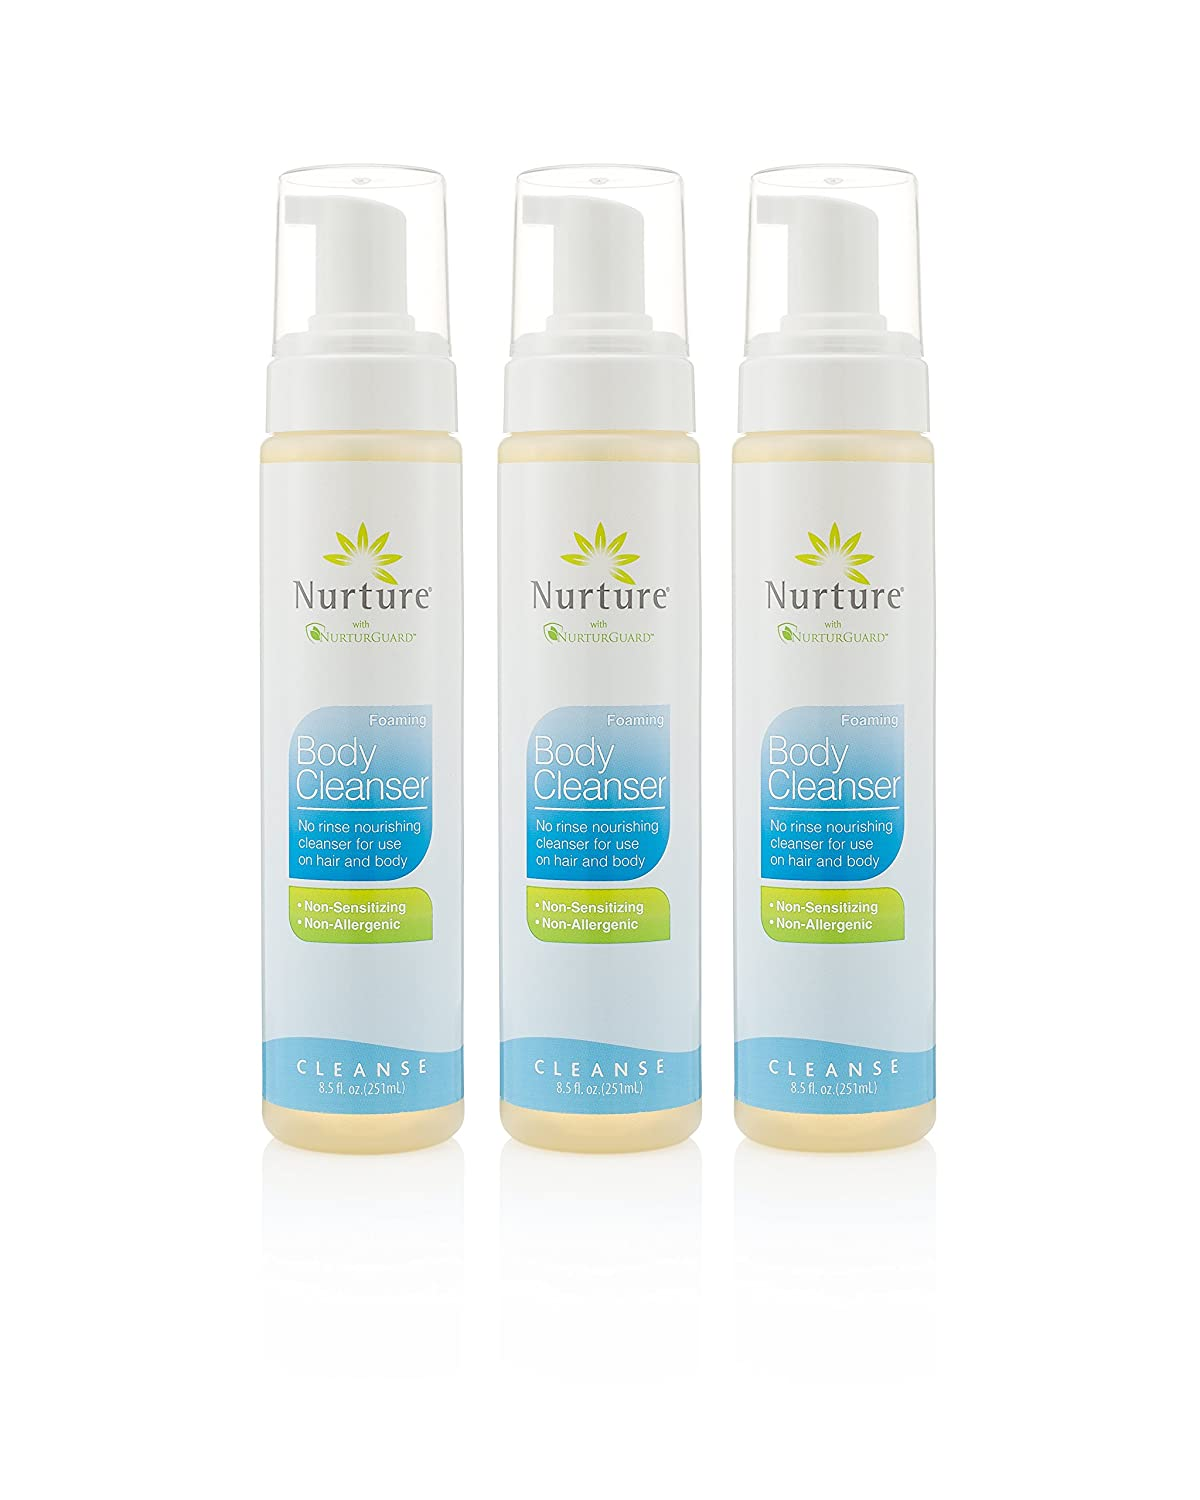 Foaming Body Cleanser by Nurture | No Rinse Body Wash That Cleanses, Moisturizes, and Protects Skin - Non Allergenic - Non sensitizing - Wipe Away Cleanser - 3 Bottles